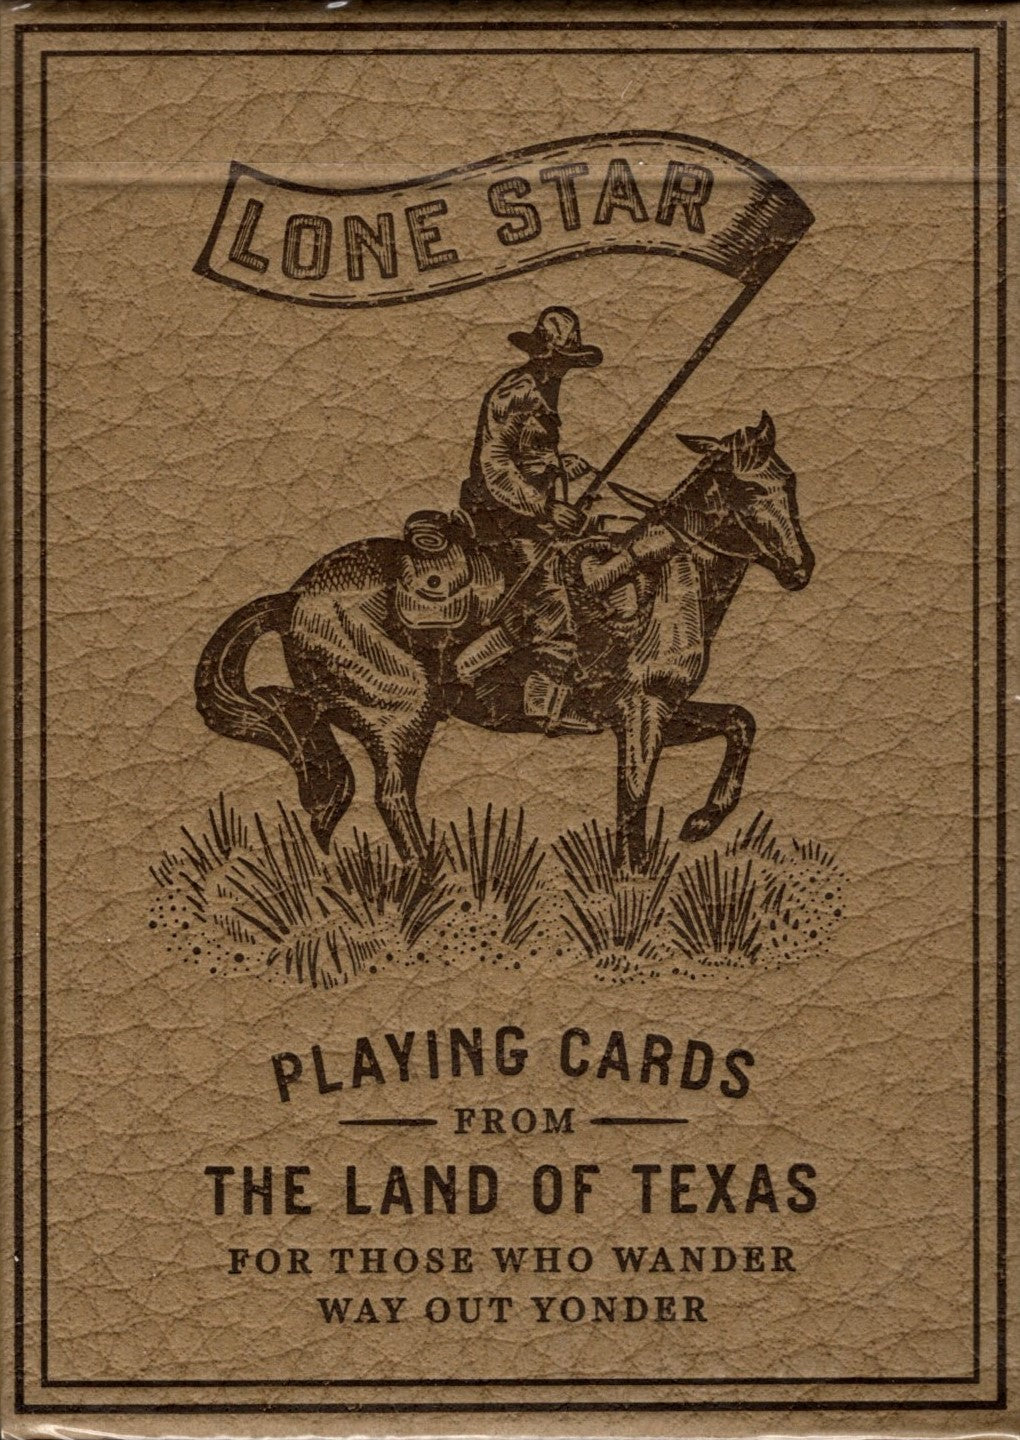 Deluxe Lone Star